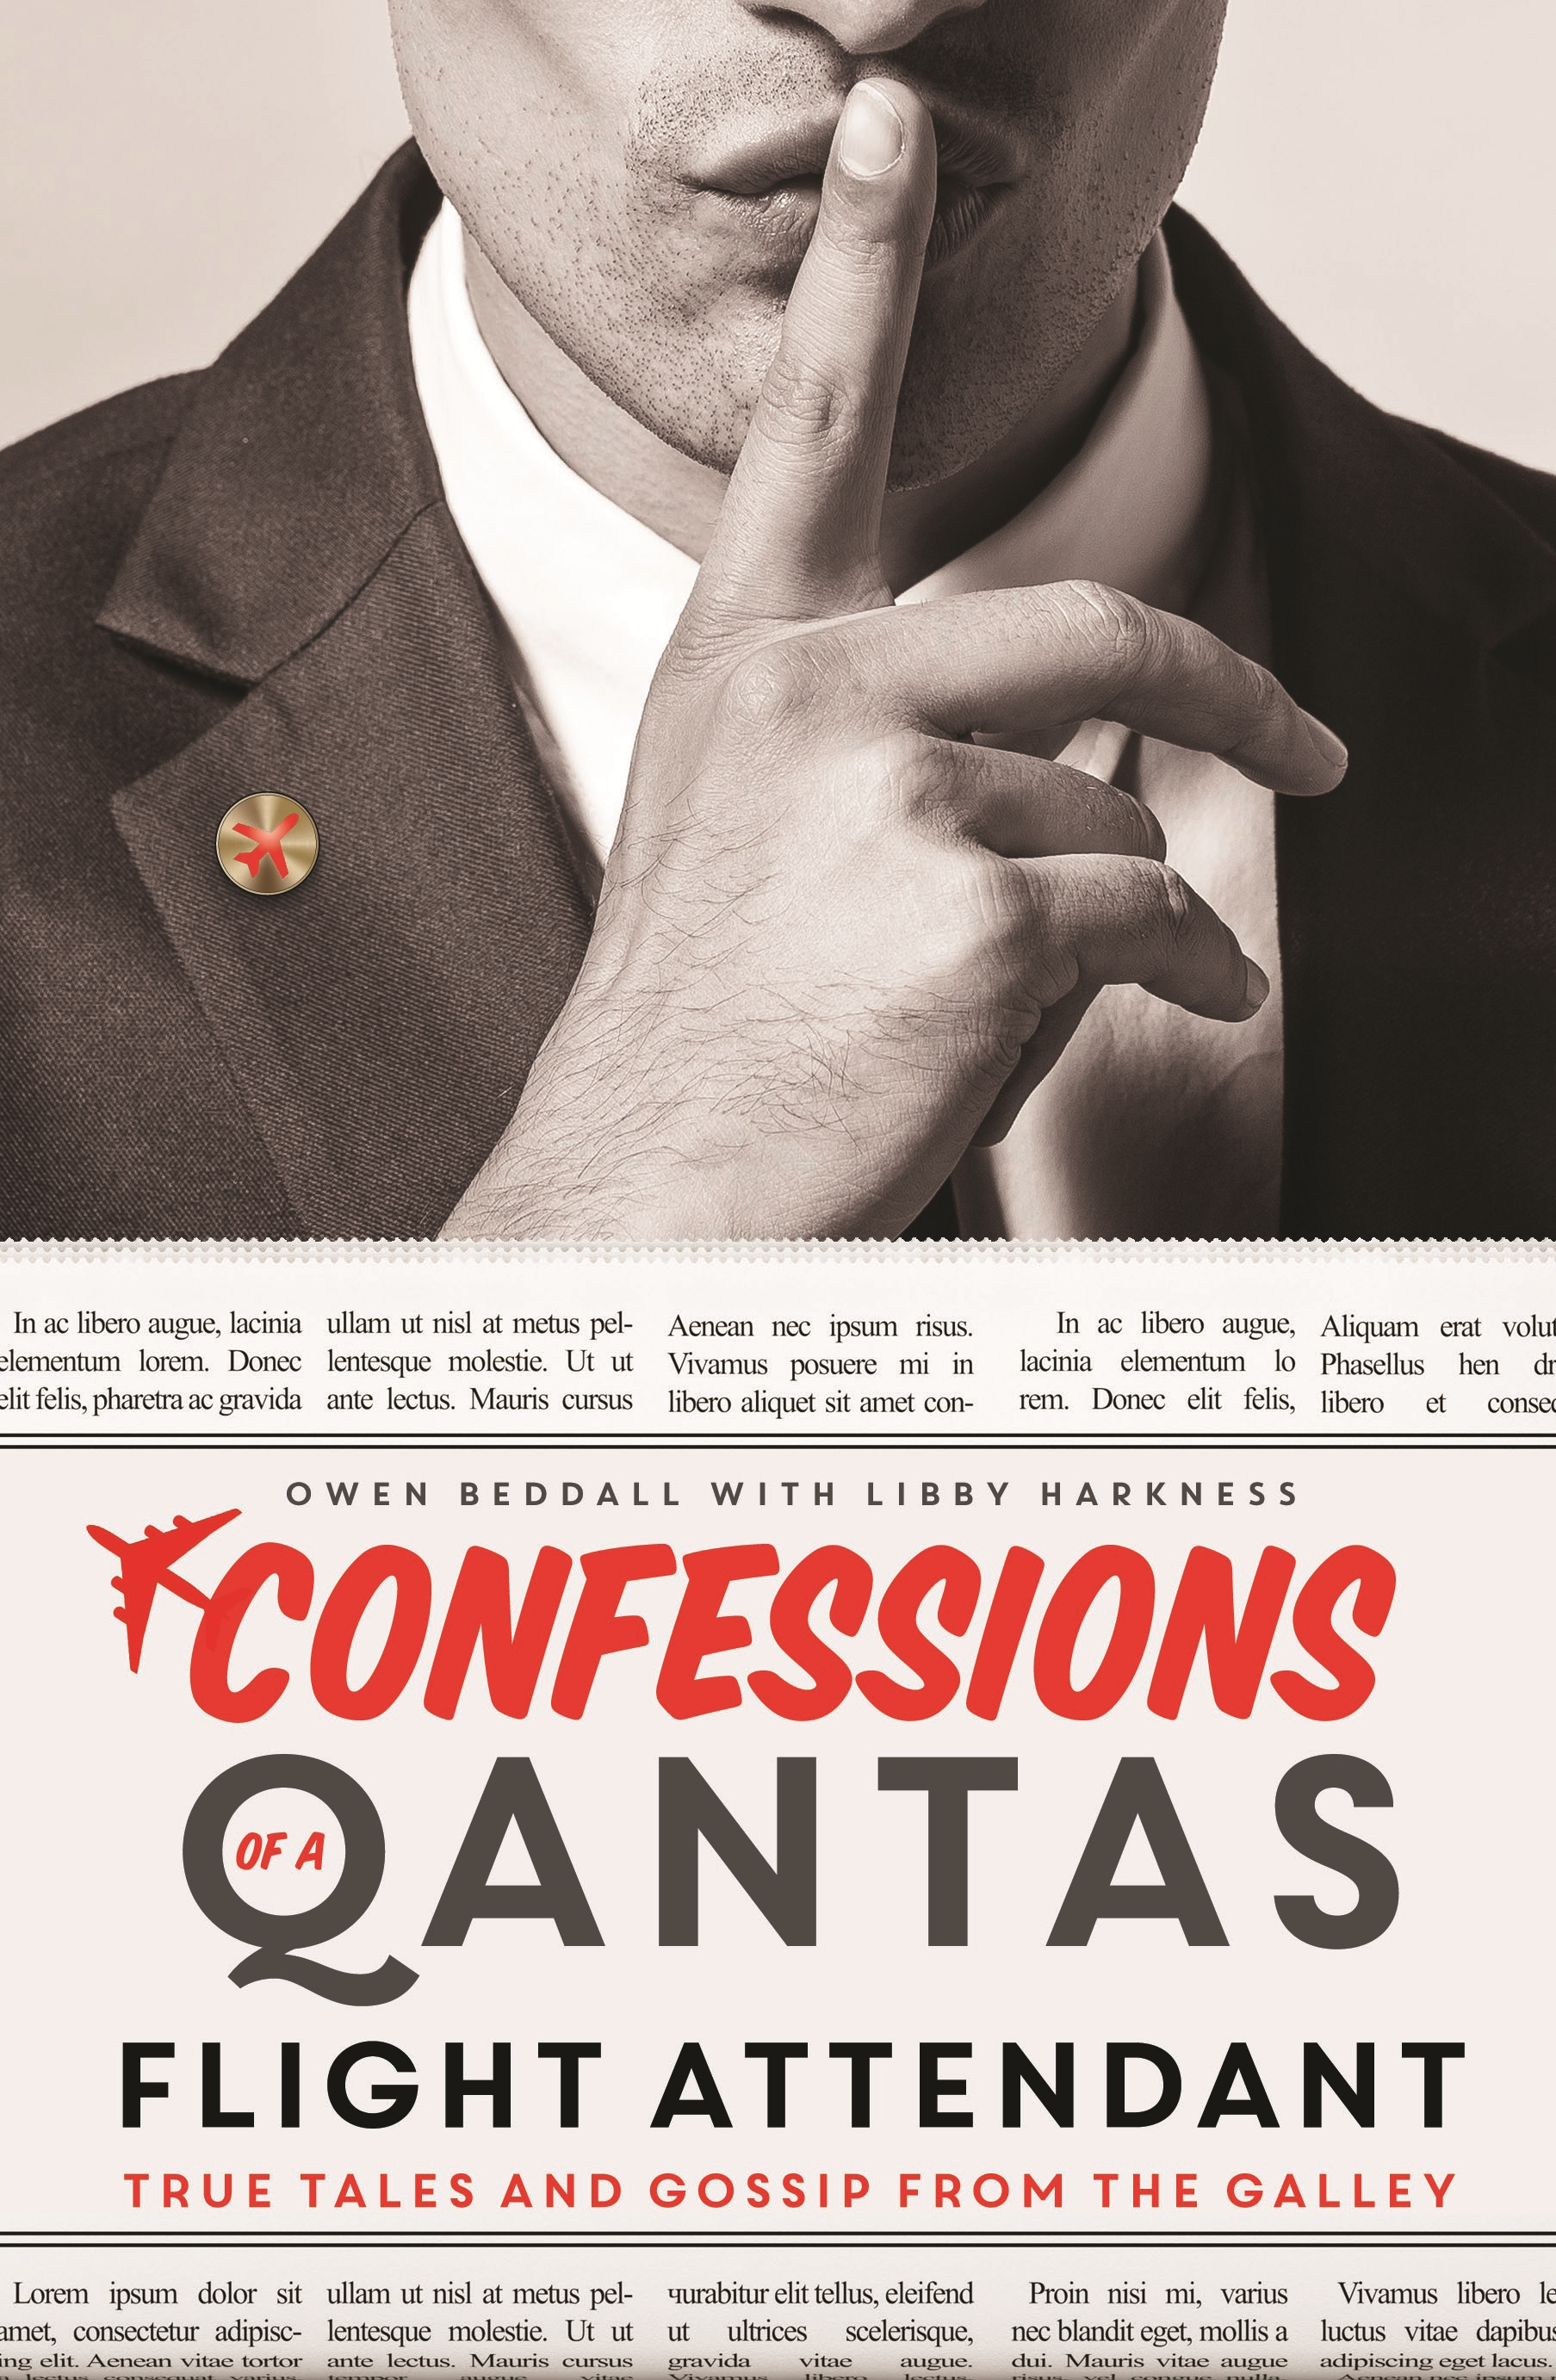 Confessions of a Qantas Flight Attendant True Tales and Gossip from the Galley